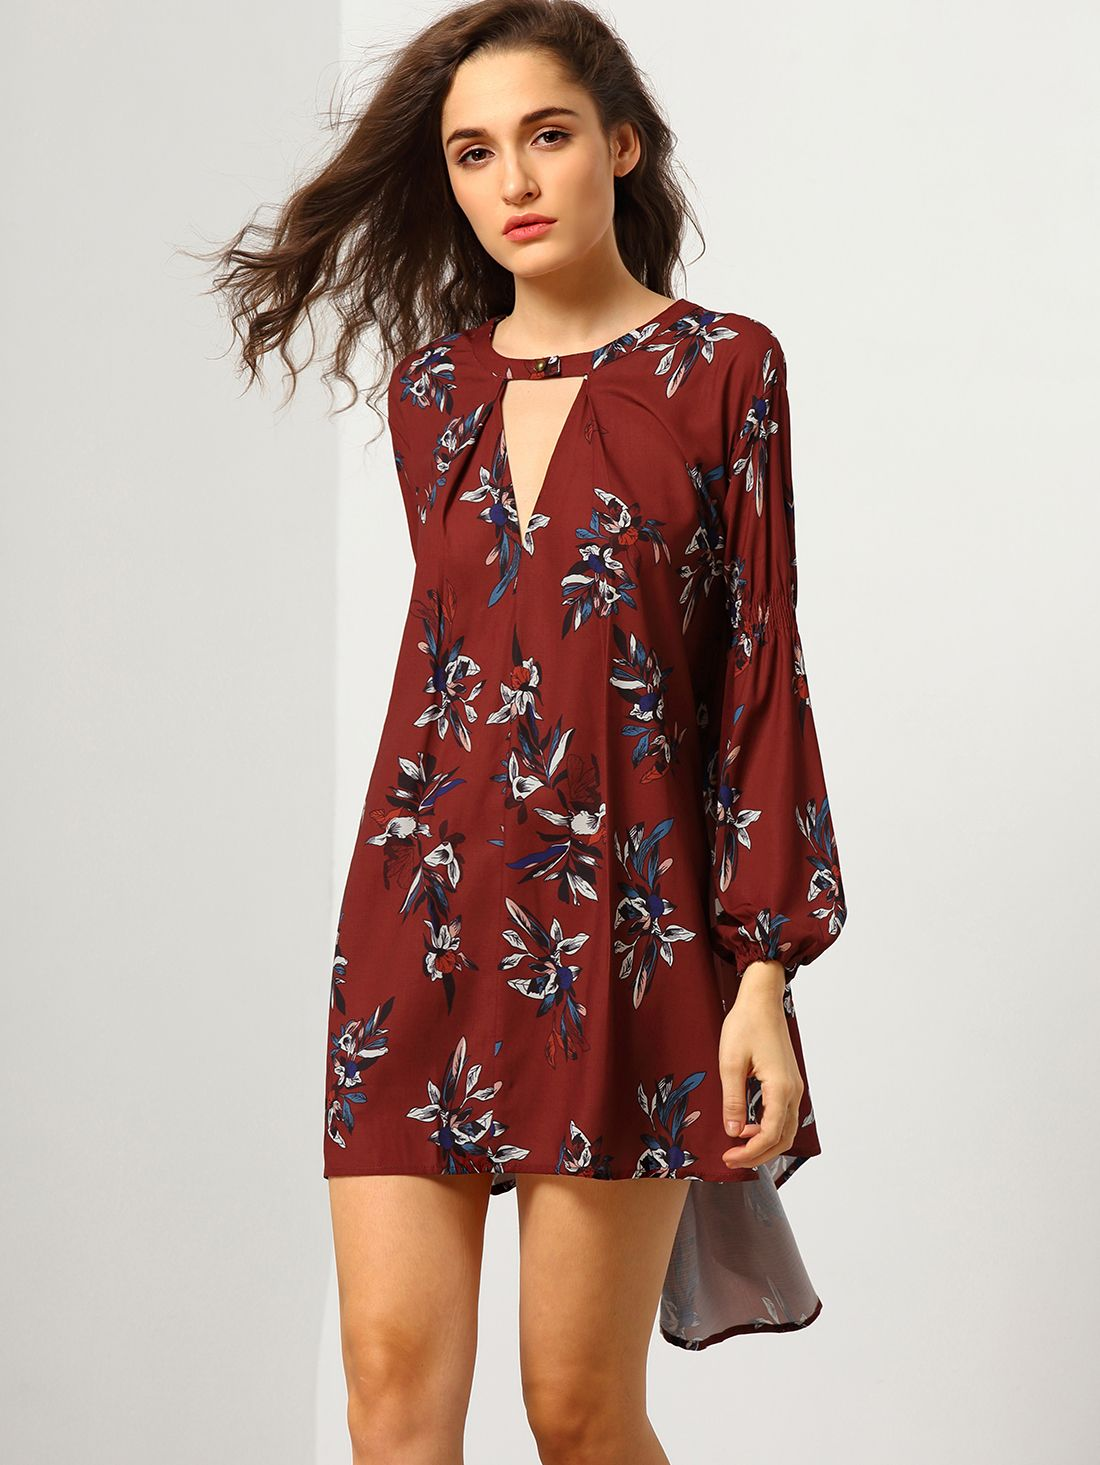 Wine Red Oxblood Baggy Long Sleeve Floral Flowery Dress Mobile Site